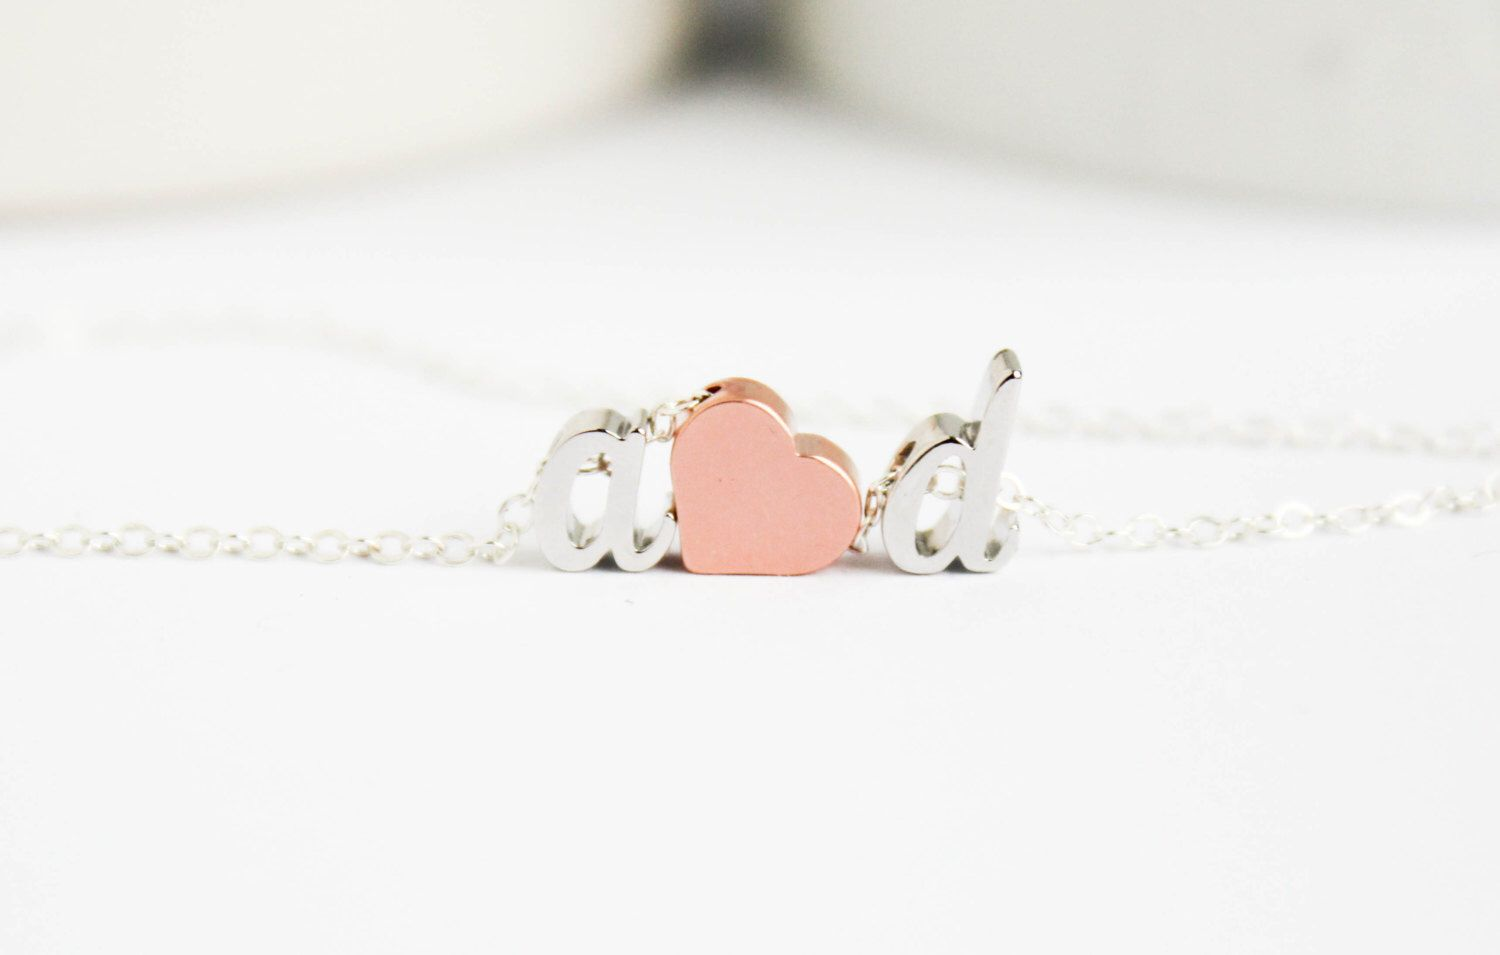 Love necklace, initial heart necklace, Couples necklace, Initial Necklace,Silver Necklace by PROJECTDAHLIA on Etsy https://www.etsy.com/listing/206998468/love-necklace-initial-heart-necklace